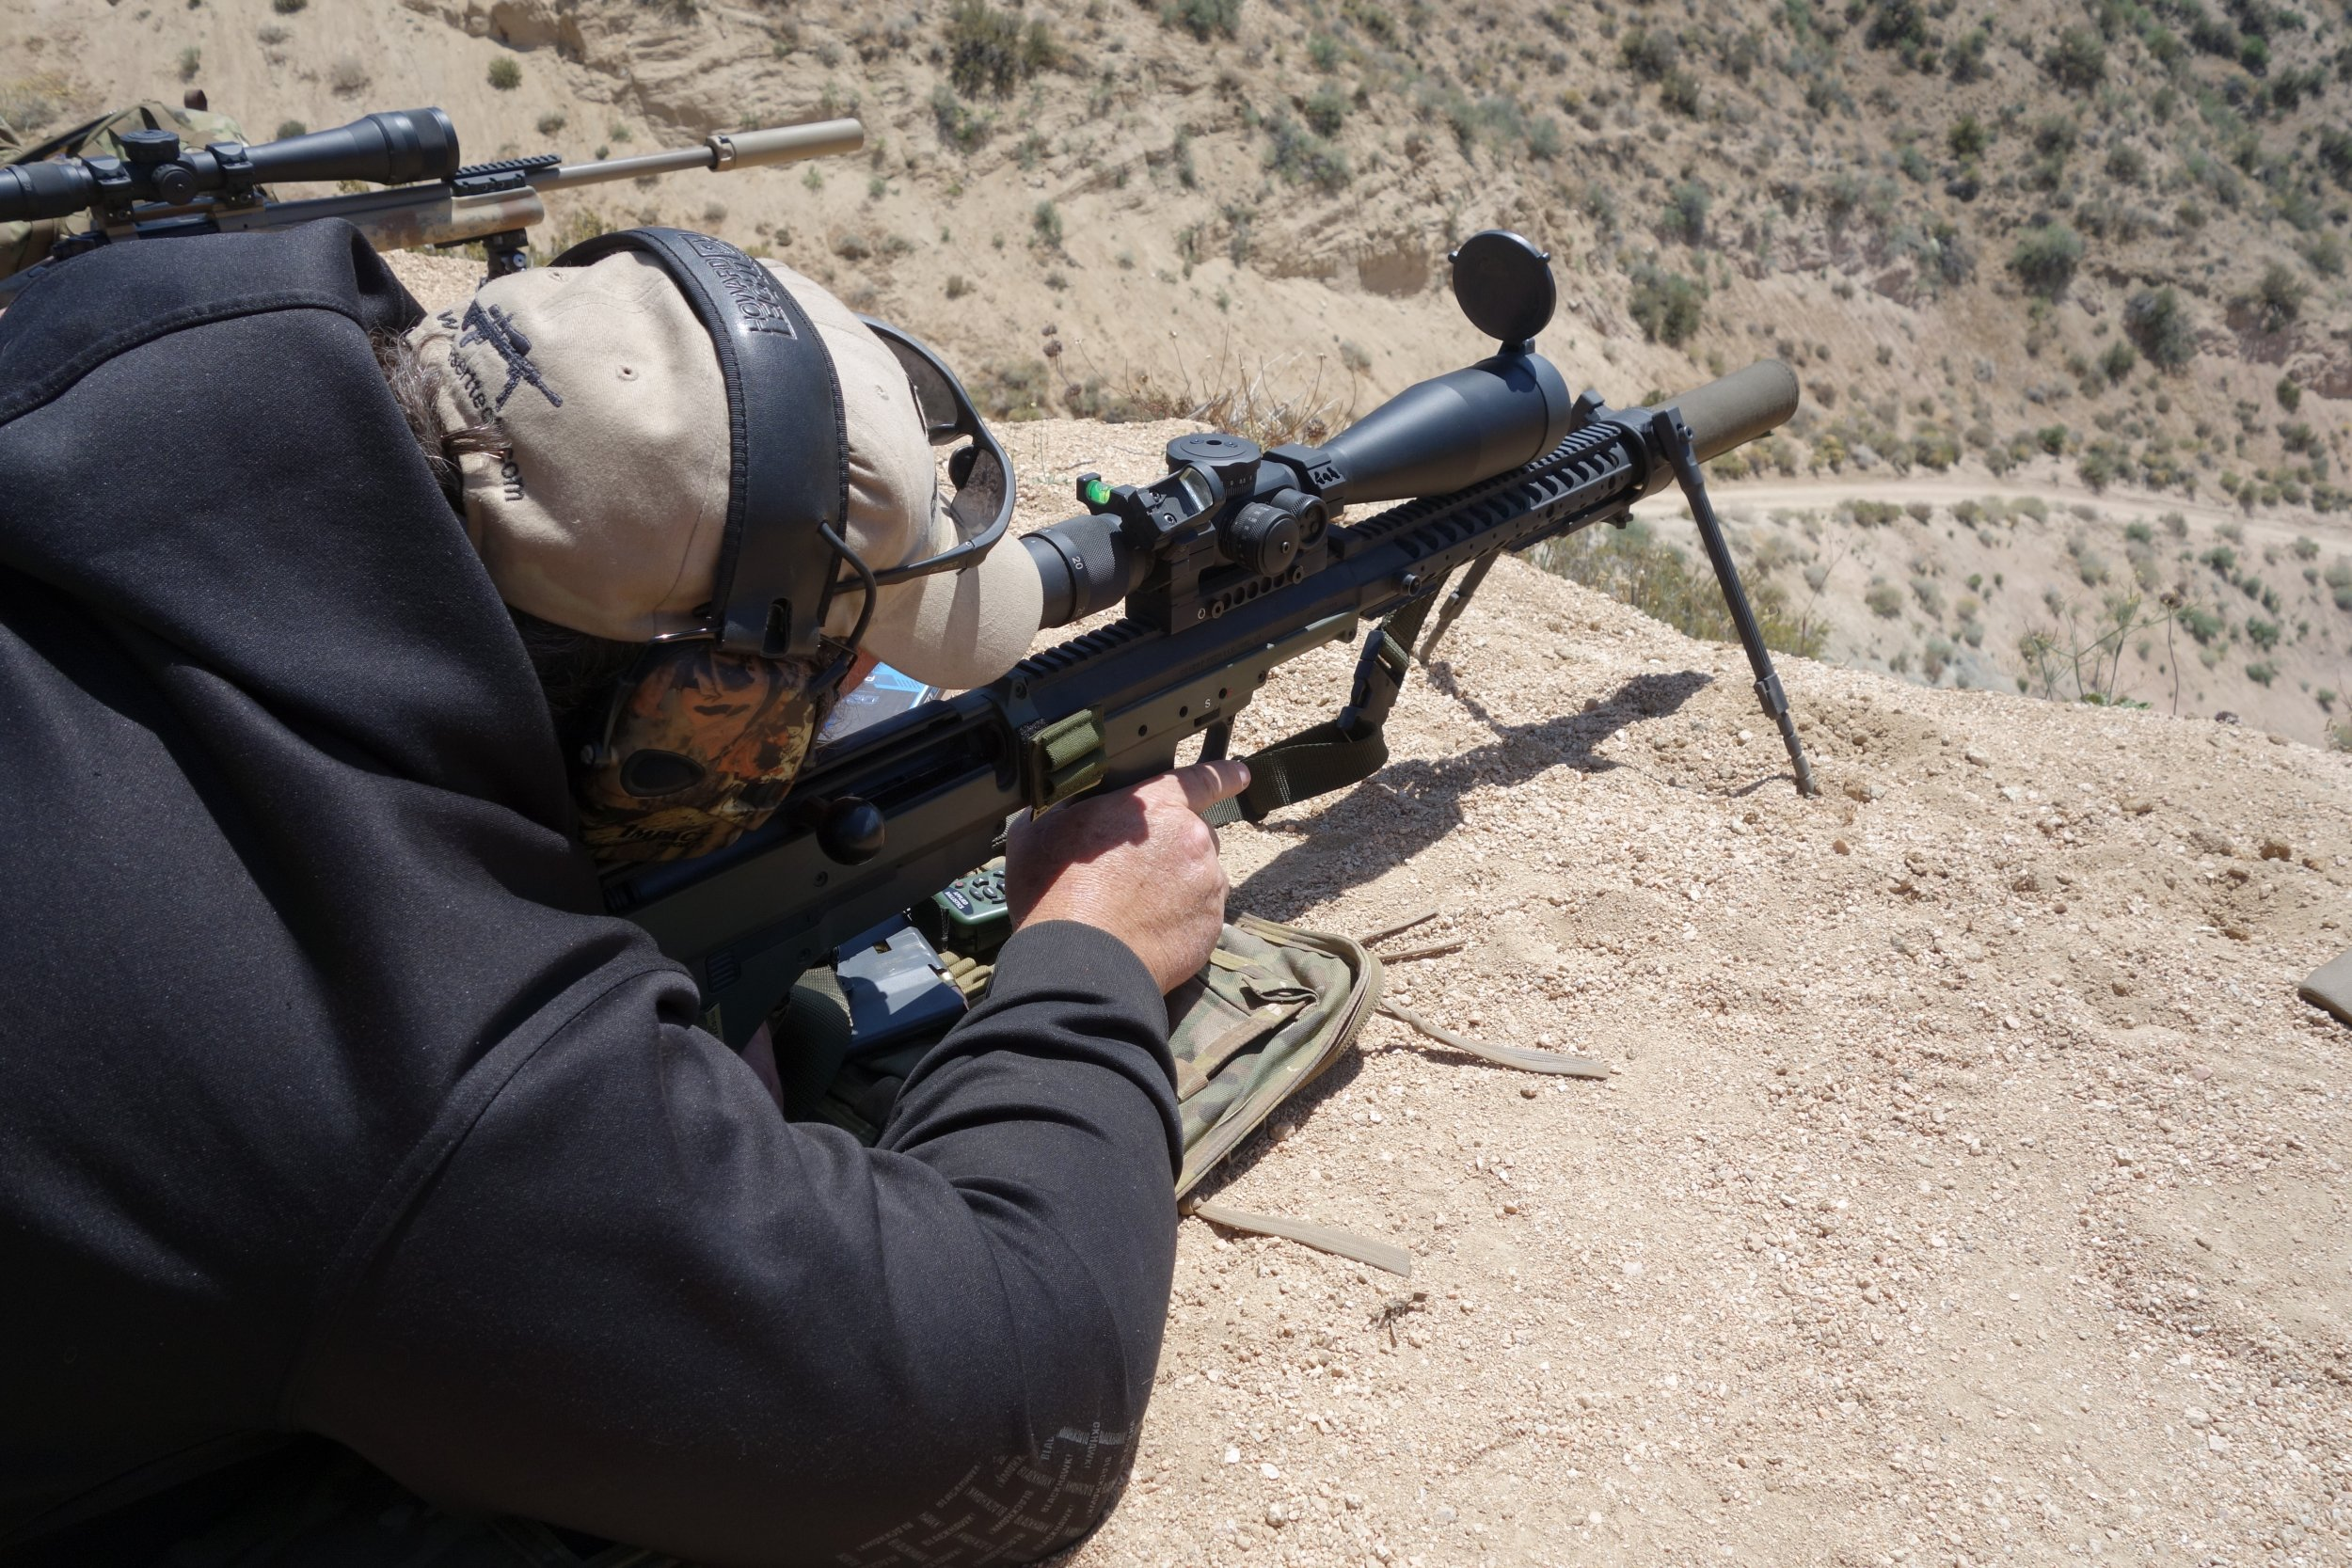 Gun review desert tactical arms stealth recon scout dta srs rifle - Us Optics Academy Long Range Precision I Two Day Precision Rifle Long Range Interdiction Sniping Course With Us Marine Corps Sniper Instructor Tyler